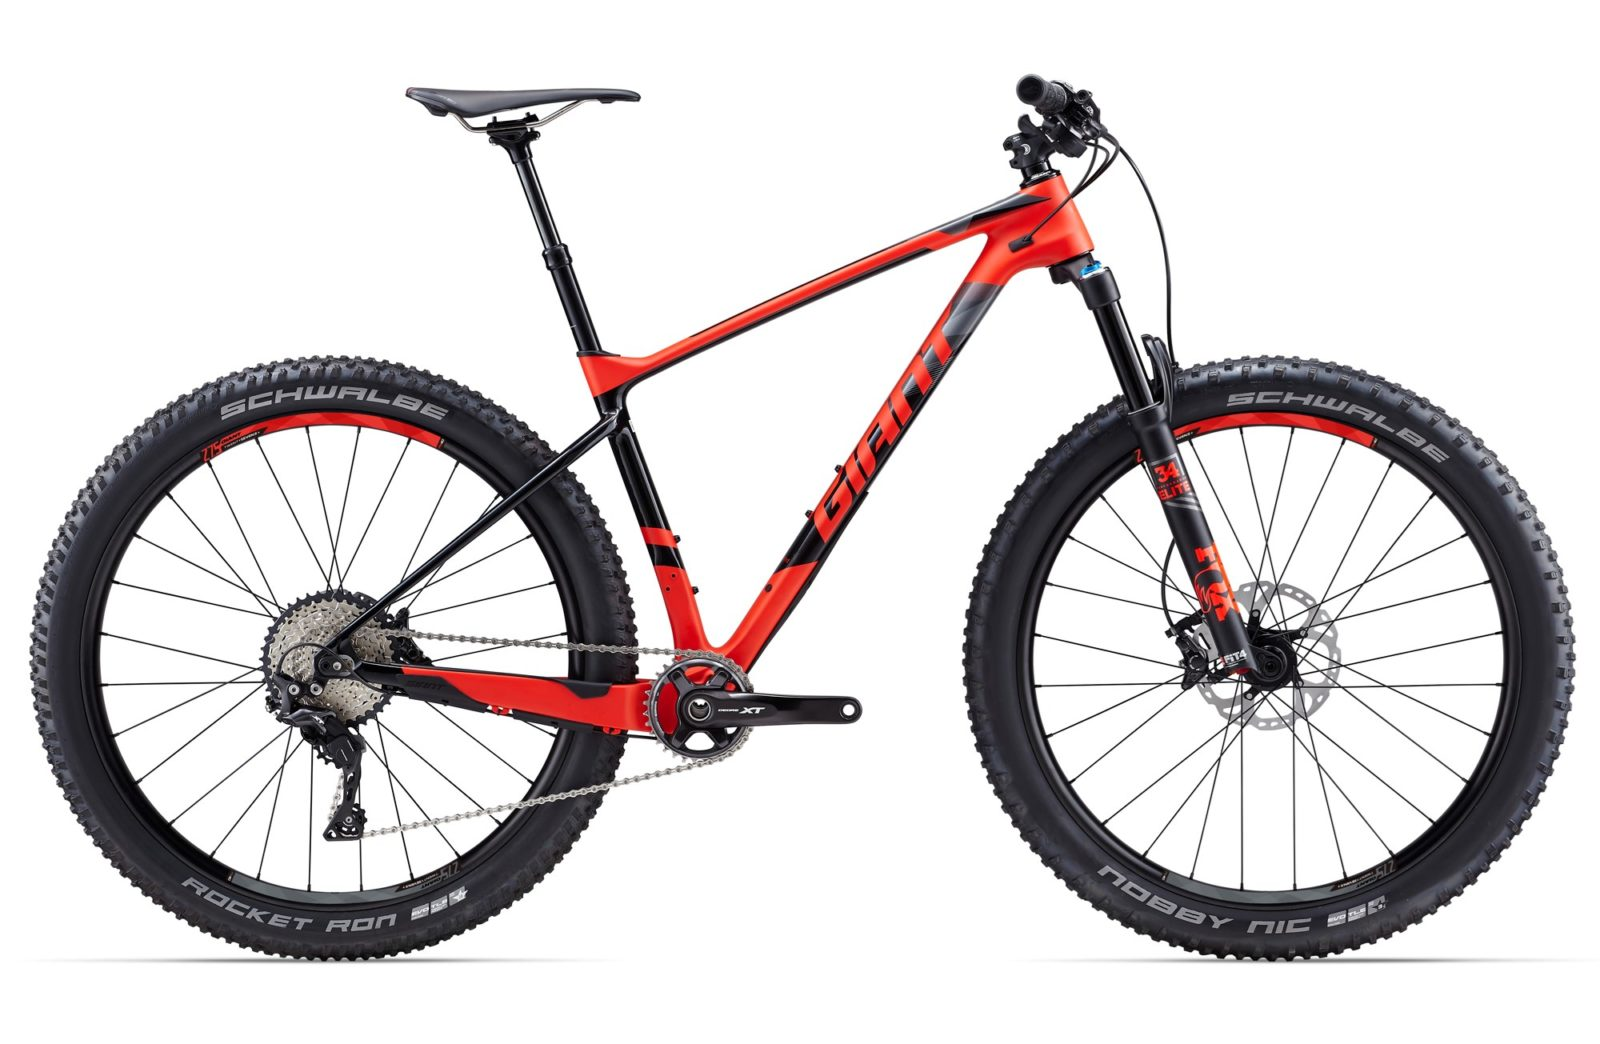 Giant MTB XTC Advance 27.5+ 1 2017